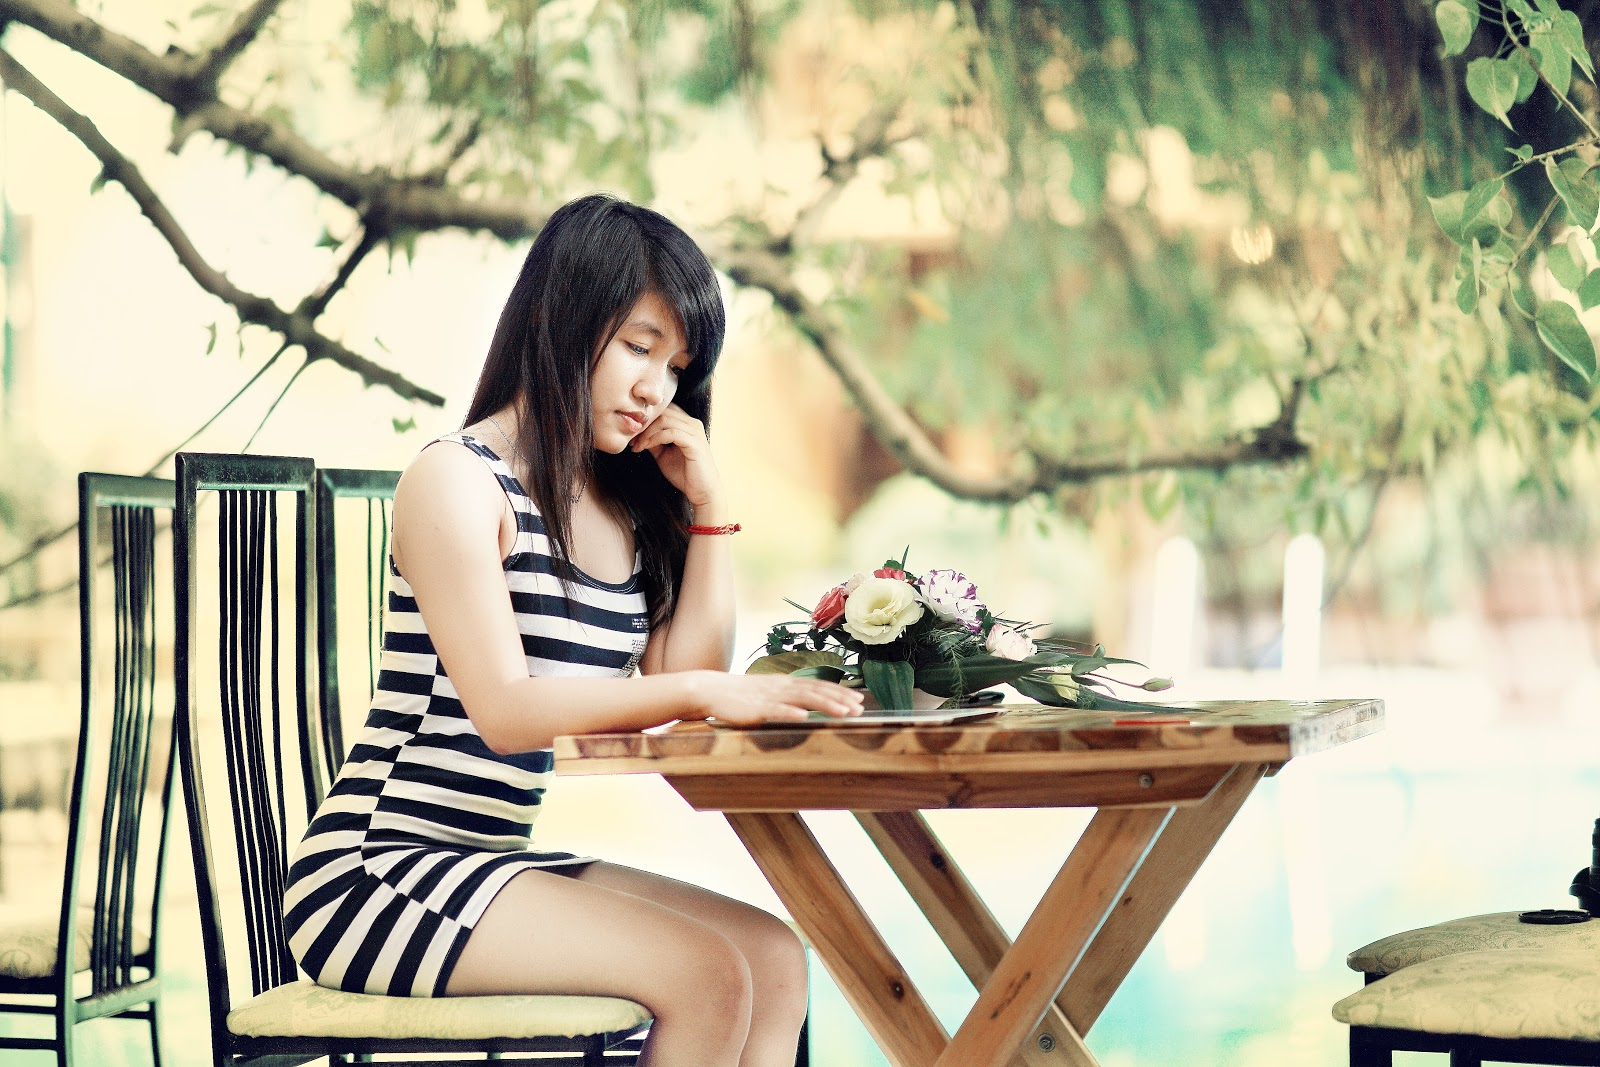 Date Night Dress girl sitting at table